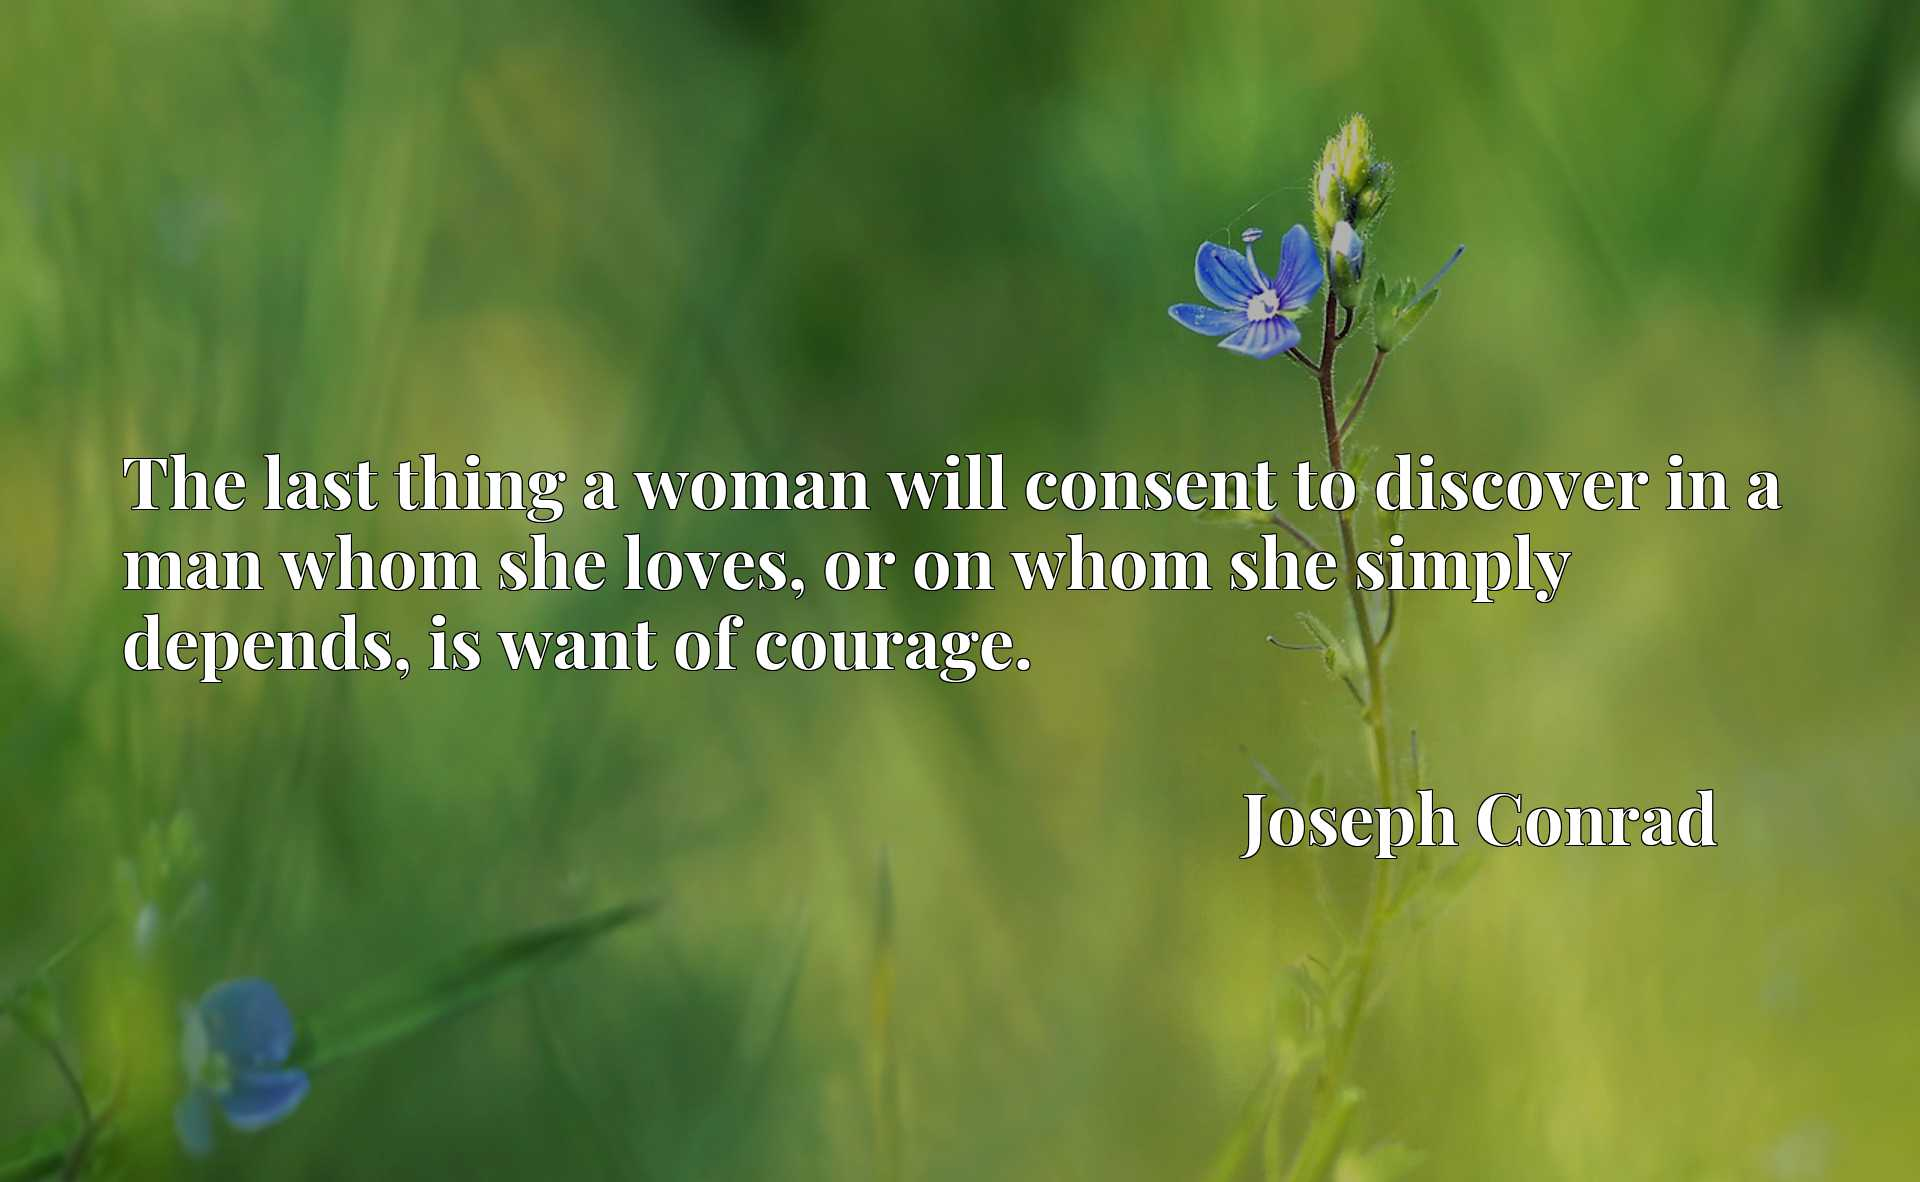 The last thing a woman will consent to discover in a man whom she loves, or on whom she simply depends, is want of courage.